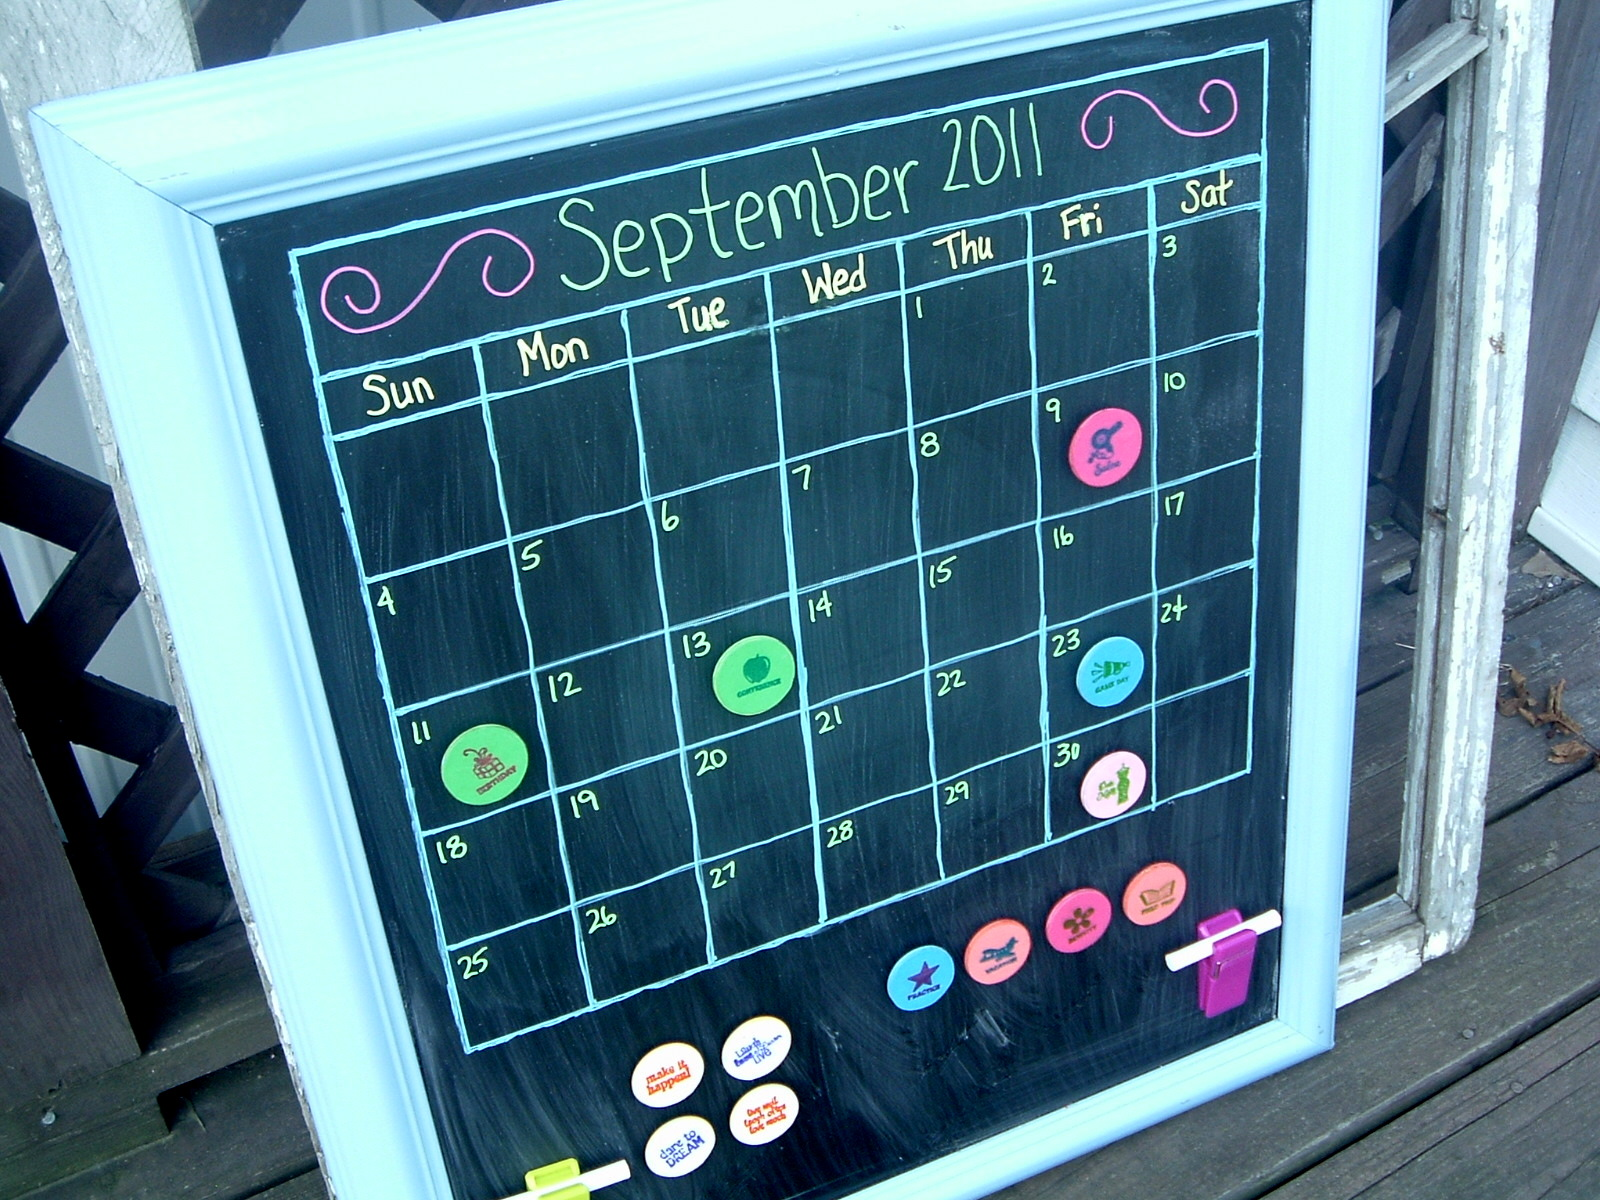 Magnetic Chalkboard Paint Magnetic Chalkboard Calendar - Make your Own! - The Country Chic Cottage